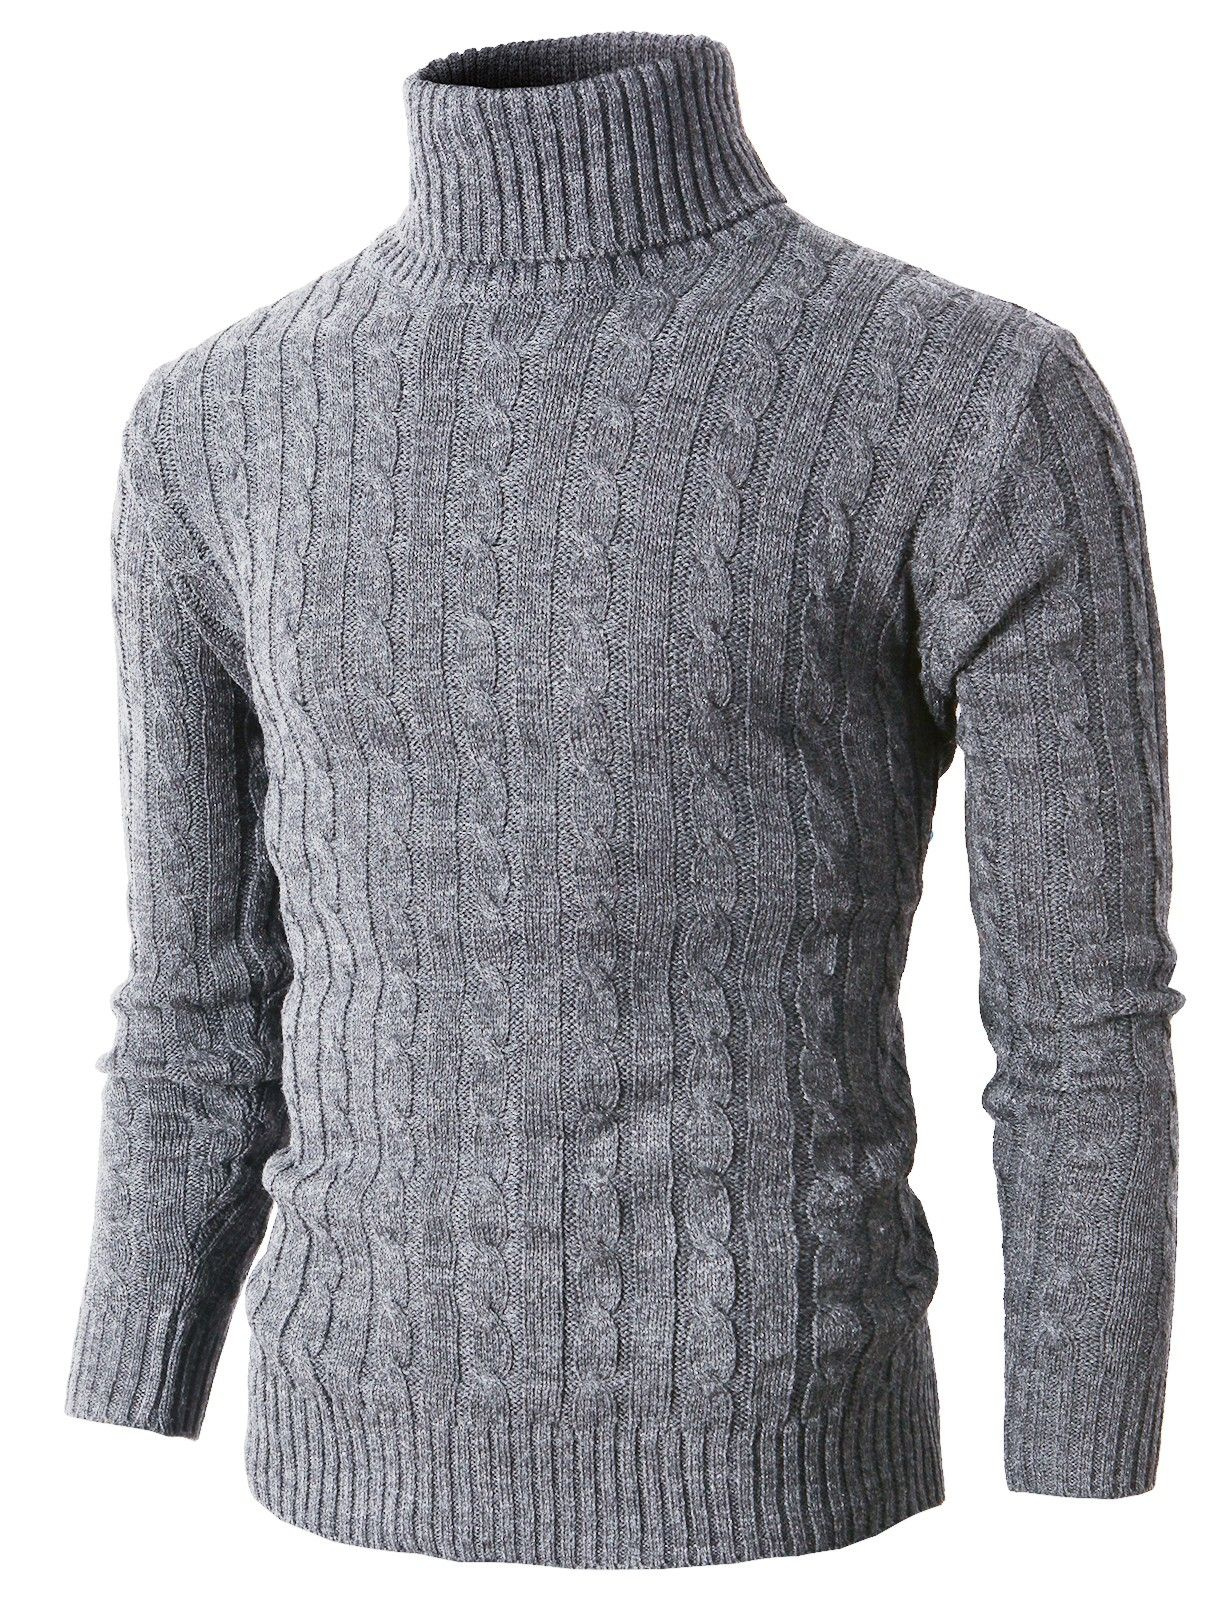 Domple Mens Turtleneck Pullover Long Sleeve Warm Winter Cable Twist Casual Sweater